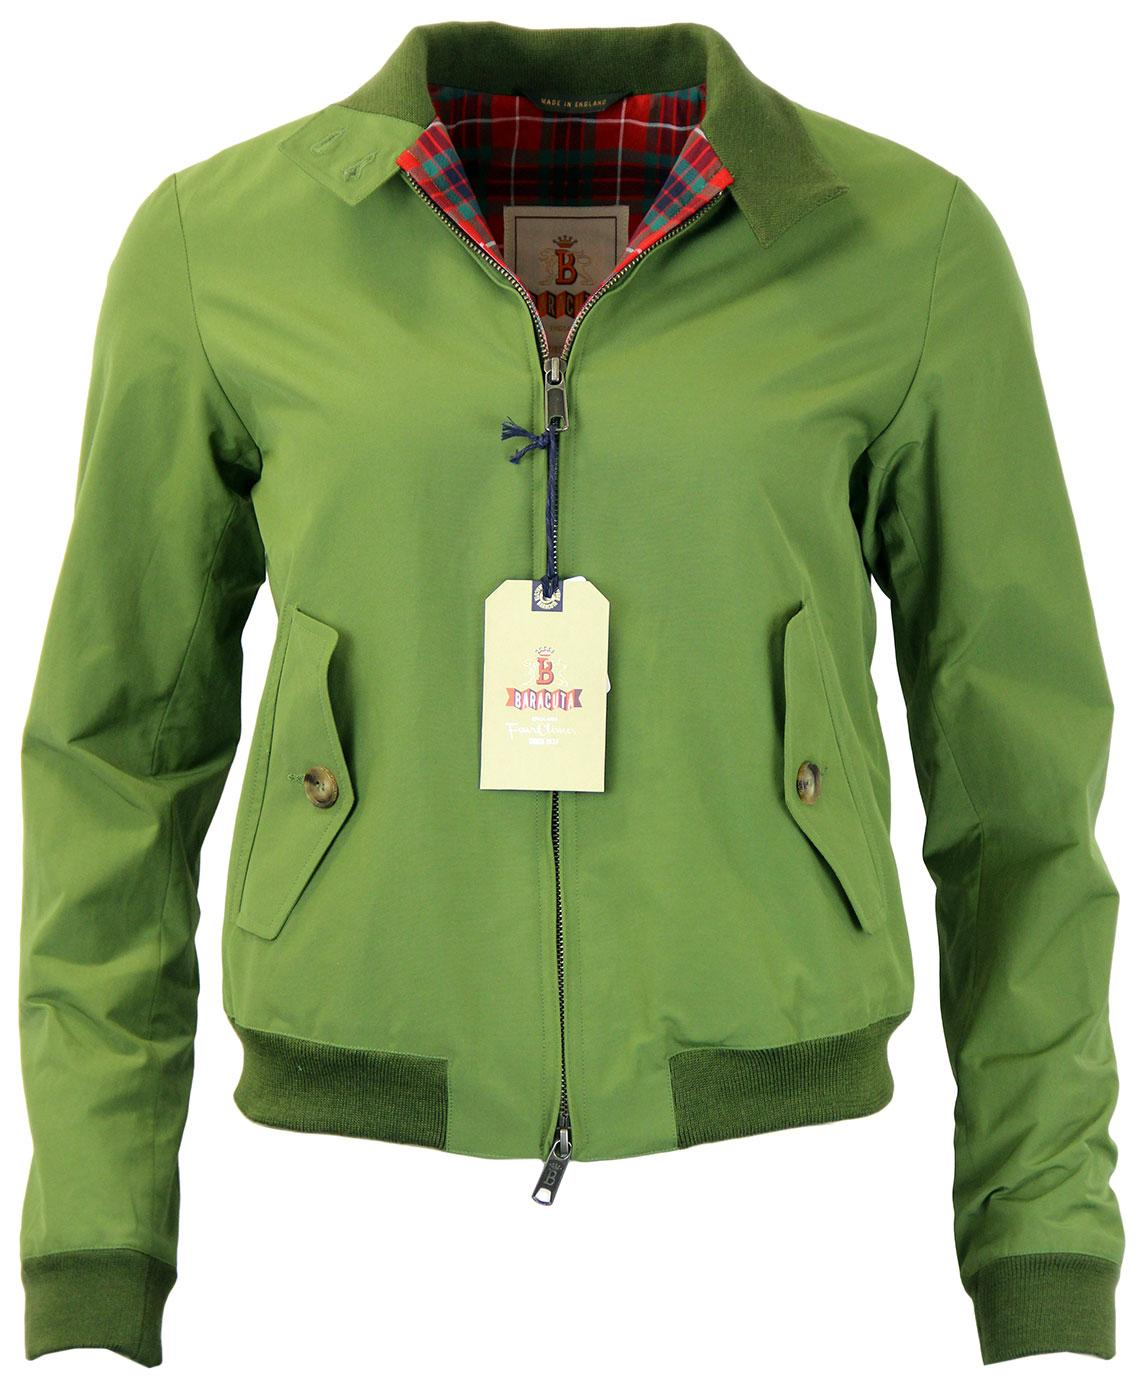 BARACUTA Womens G9 Original Harrington Jacket (OG)